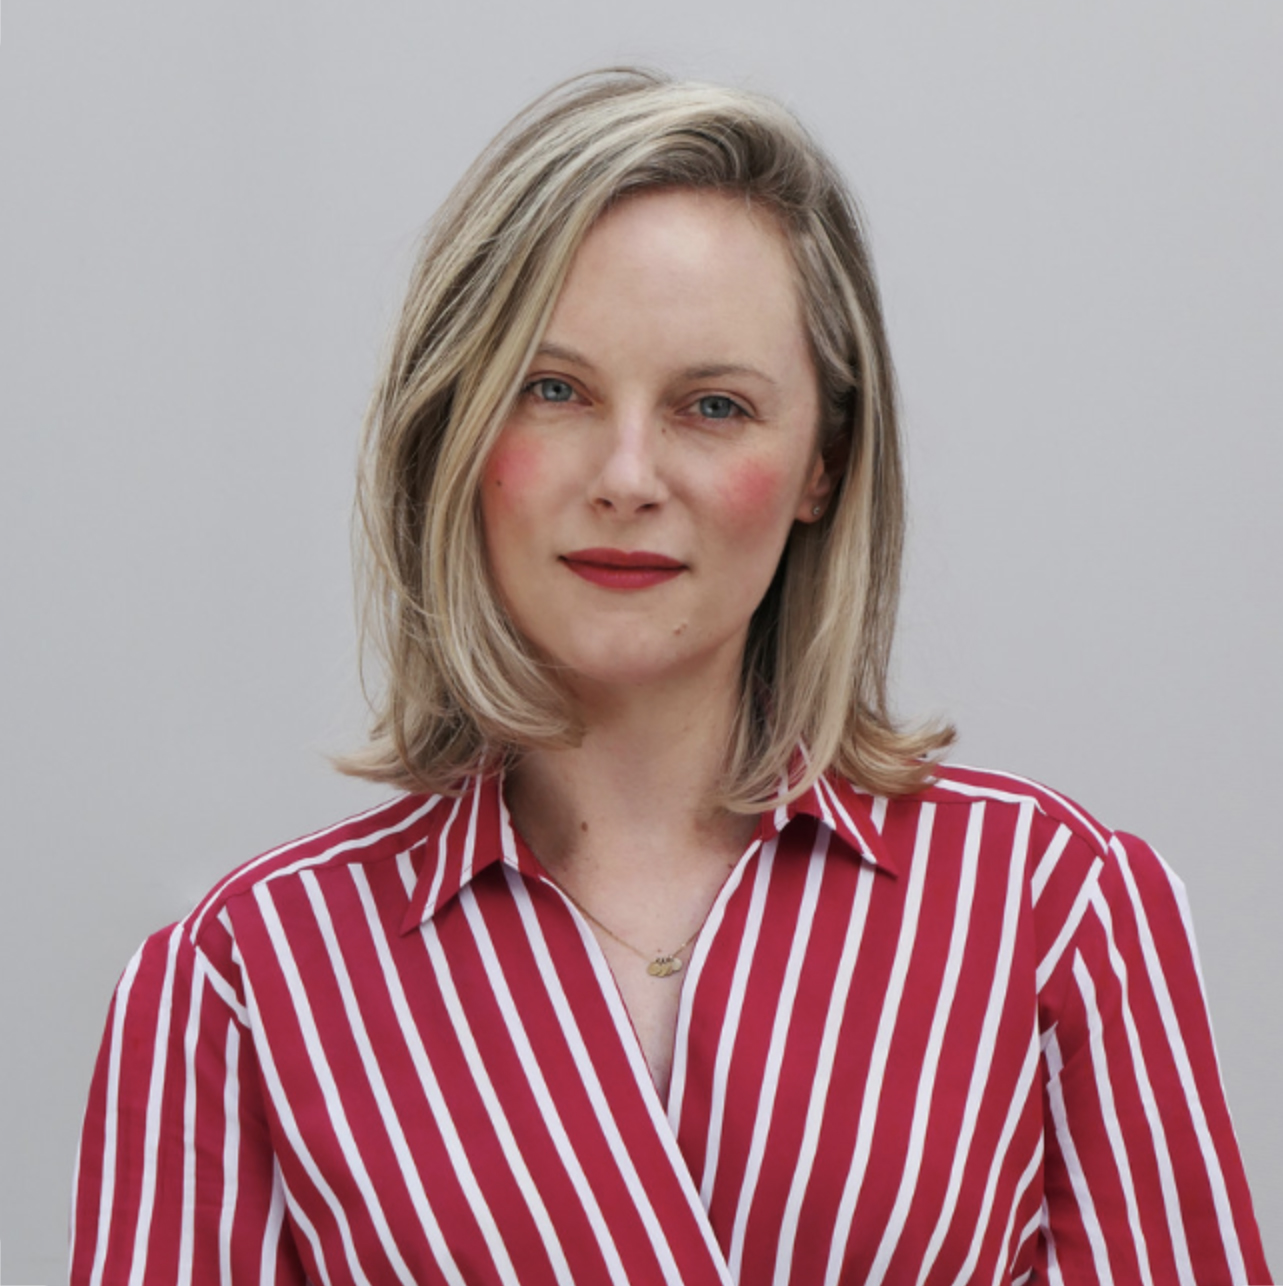 Former Clemenger BBDO art director Helen Neville joins Keep Left as senior art director